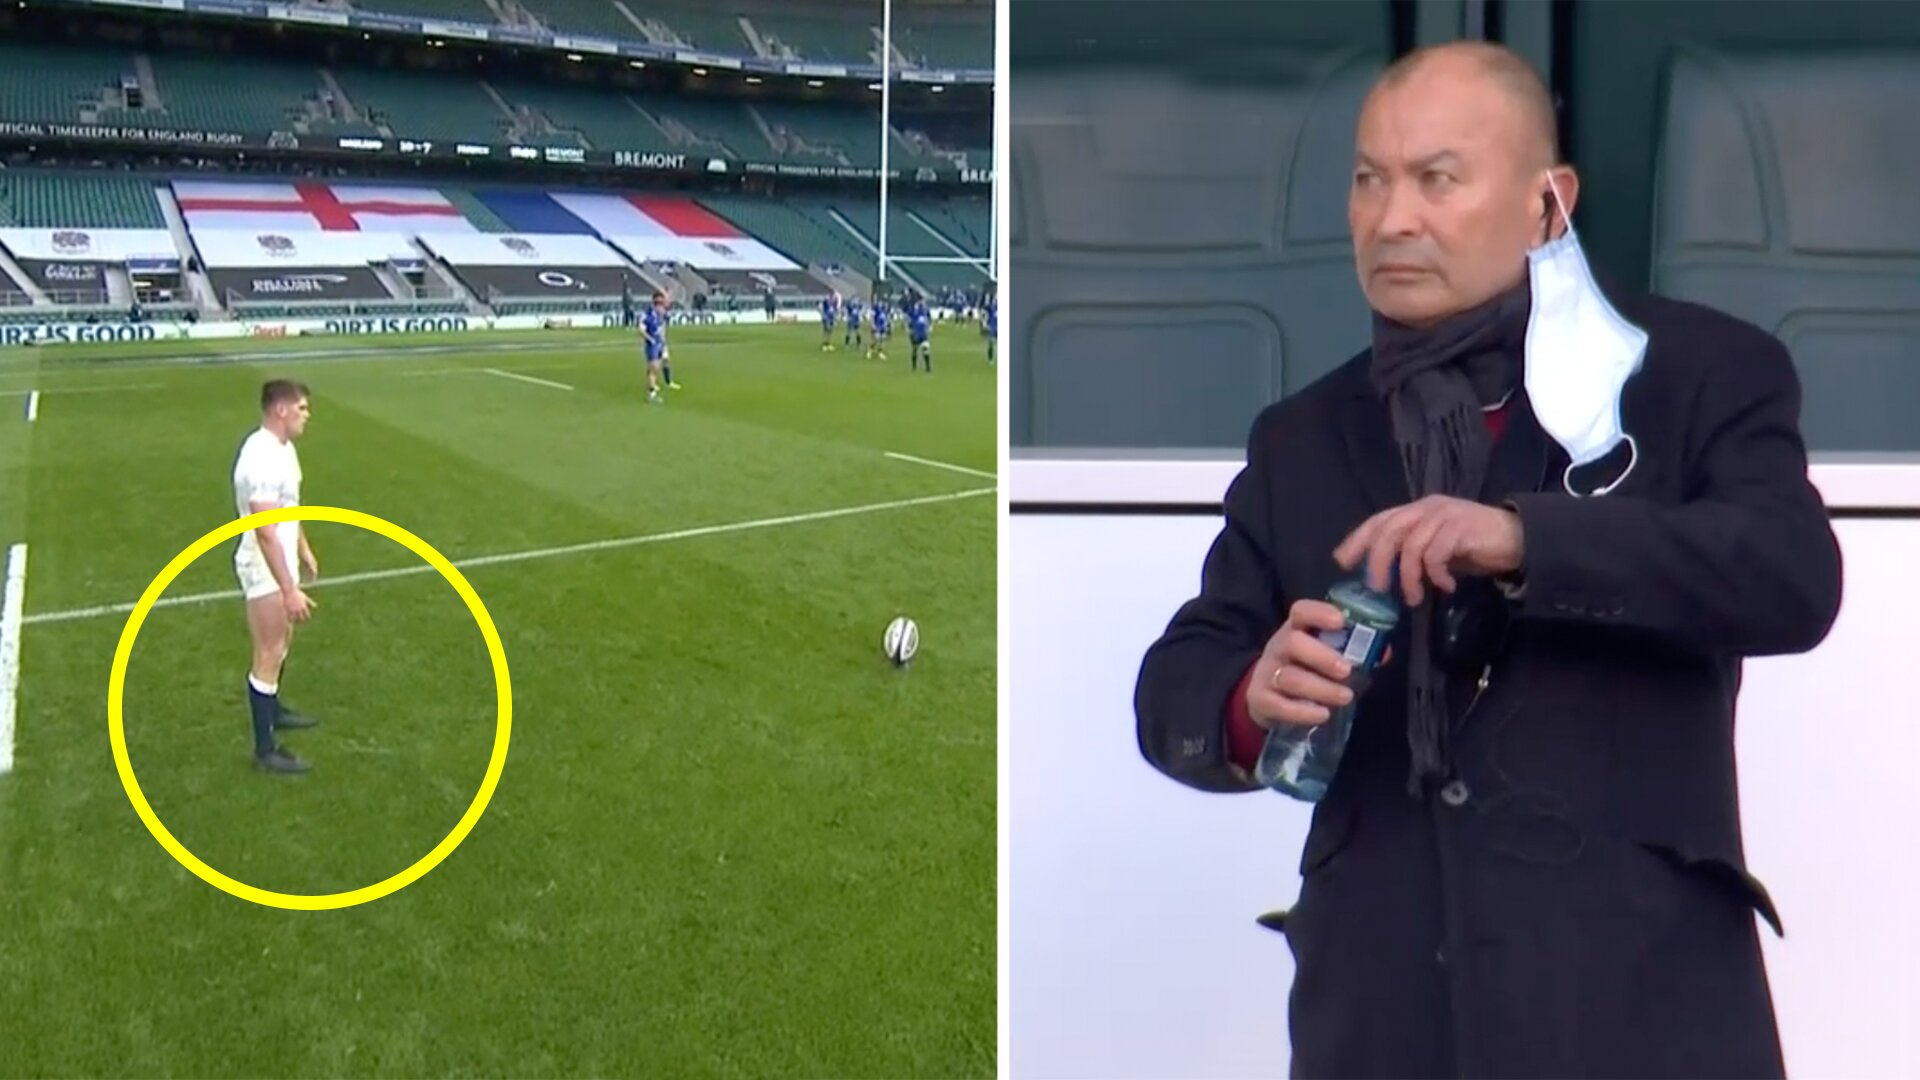 Rugby analysis guru with 387 IQ has worked out how England beat France in rugby